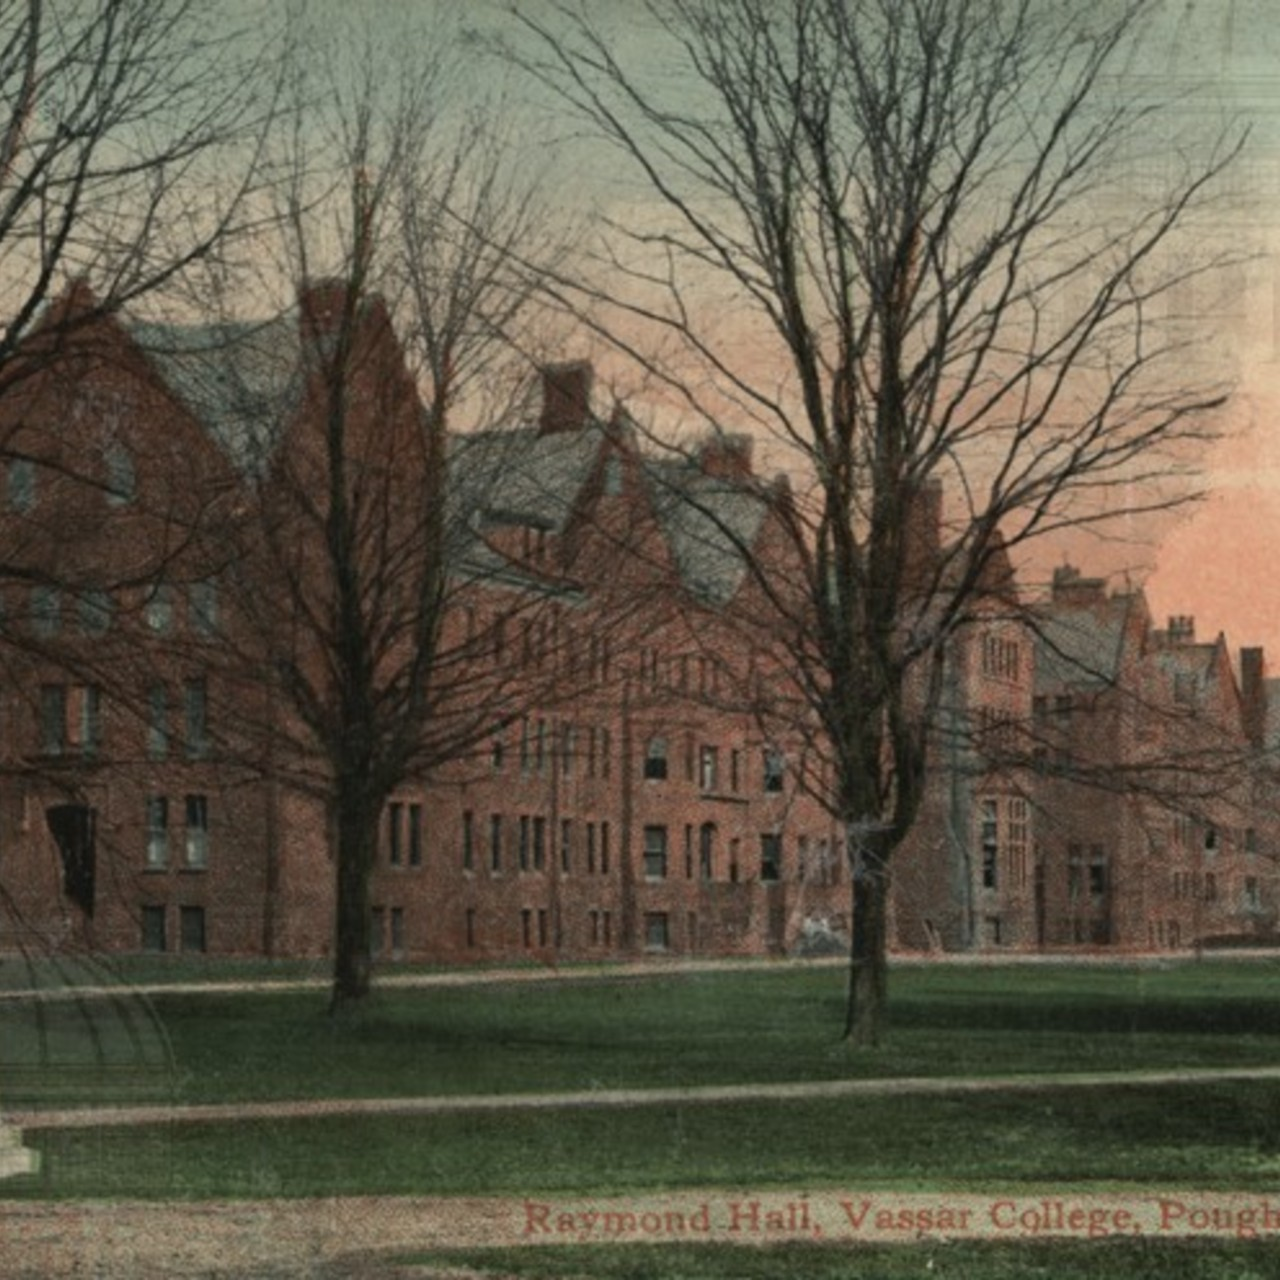 Raymond Hall, Vassar College